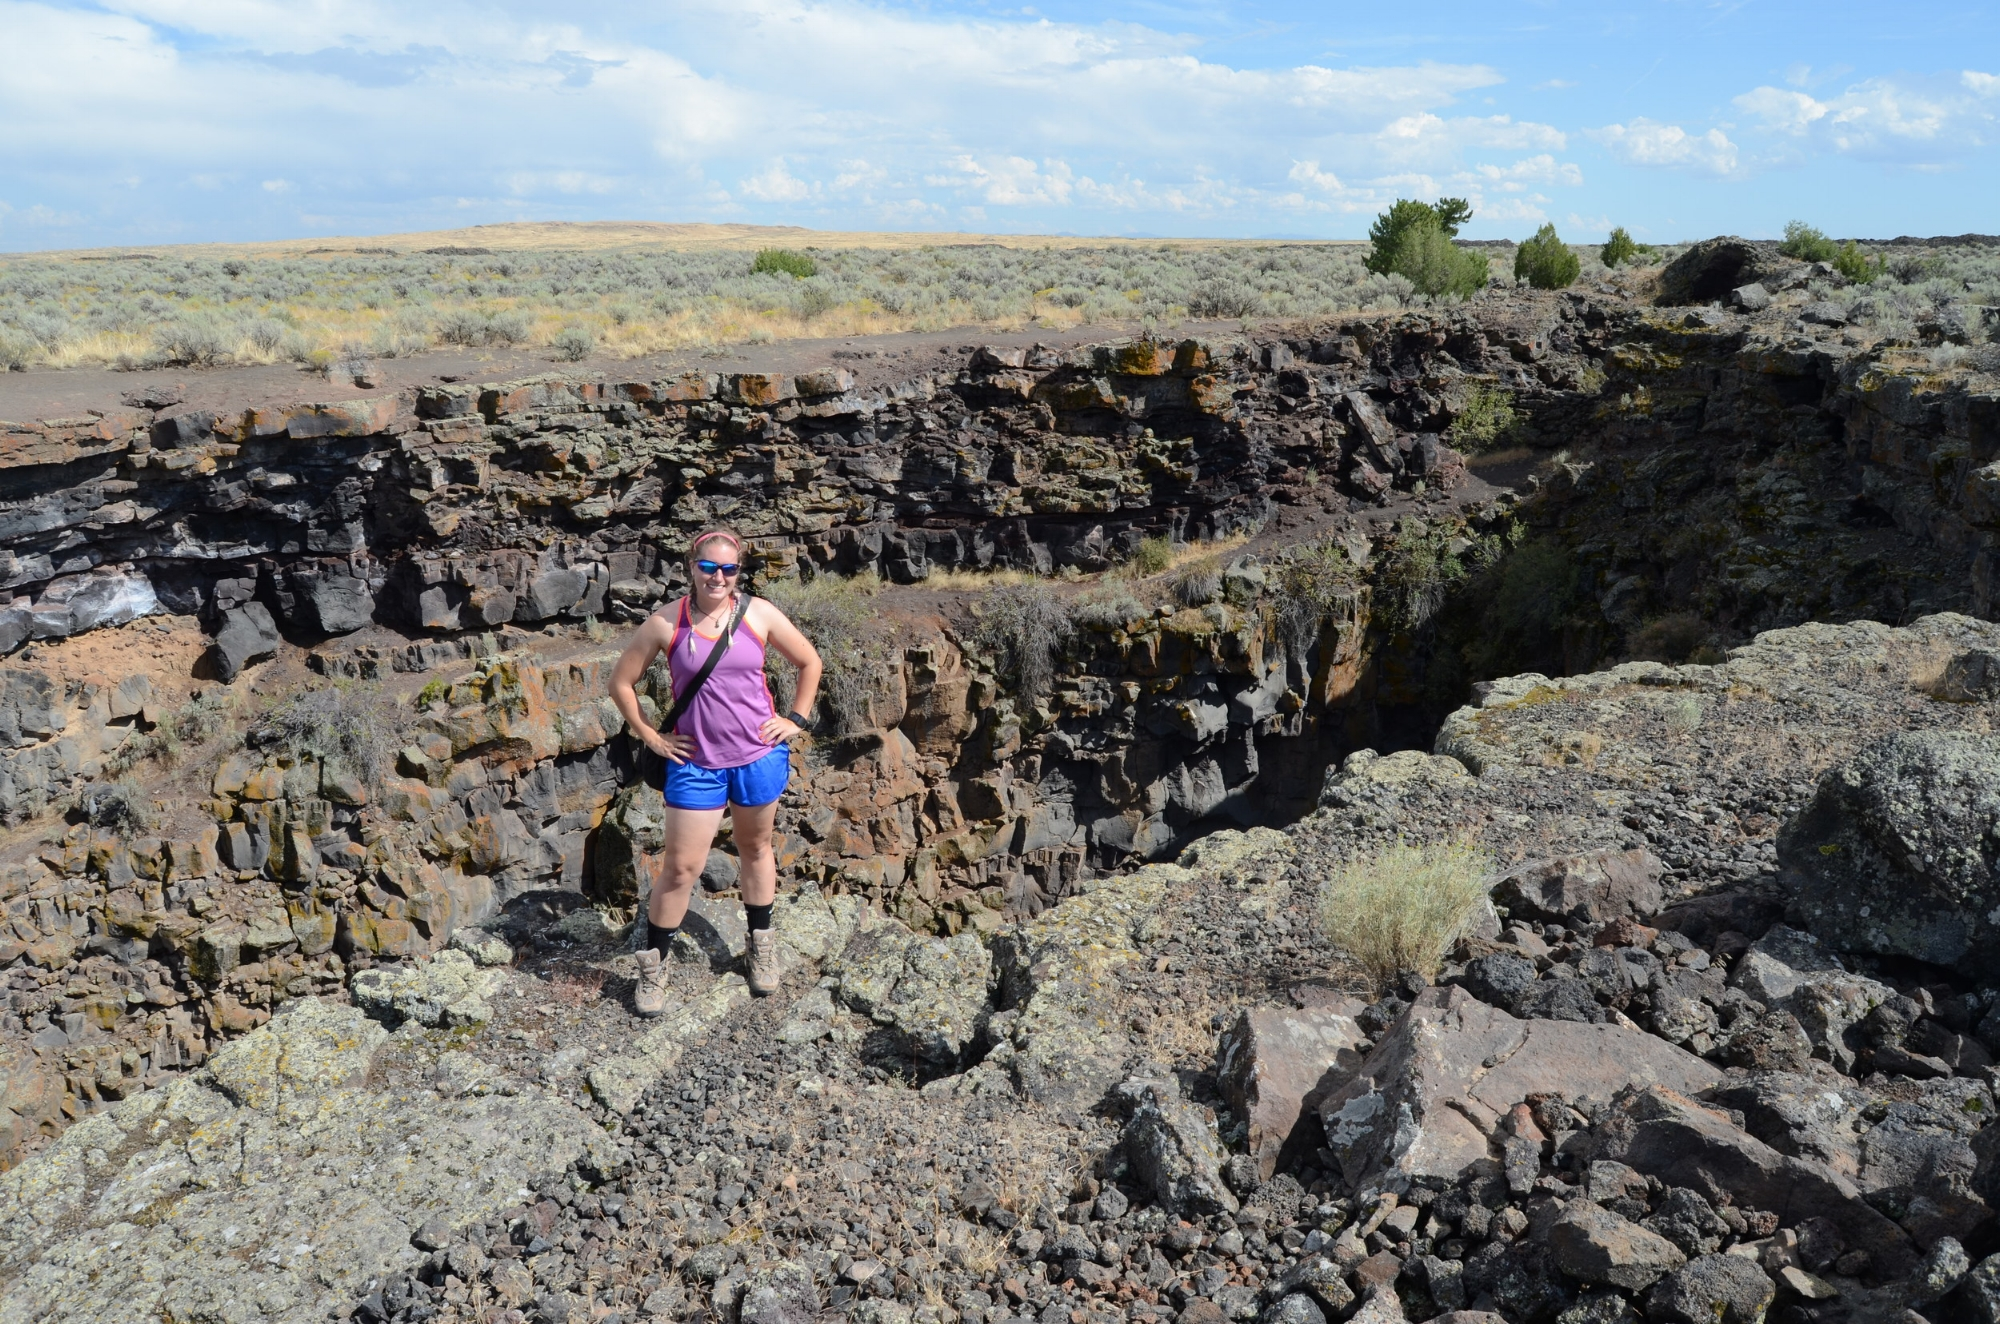 Nicki Button conducting fieldwork at Kings Bowl, an explosive volcanic vent that once ejected many large blocks in Craters of the Moon National Monument and Preserve. Button looked at the block distribution around the vent as an analog site to volcanic vents on early Mars. Photo compliments of Nicki Button.